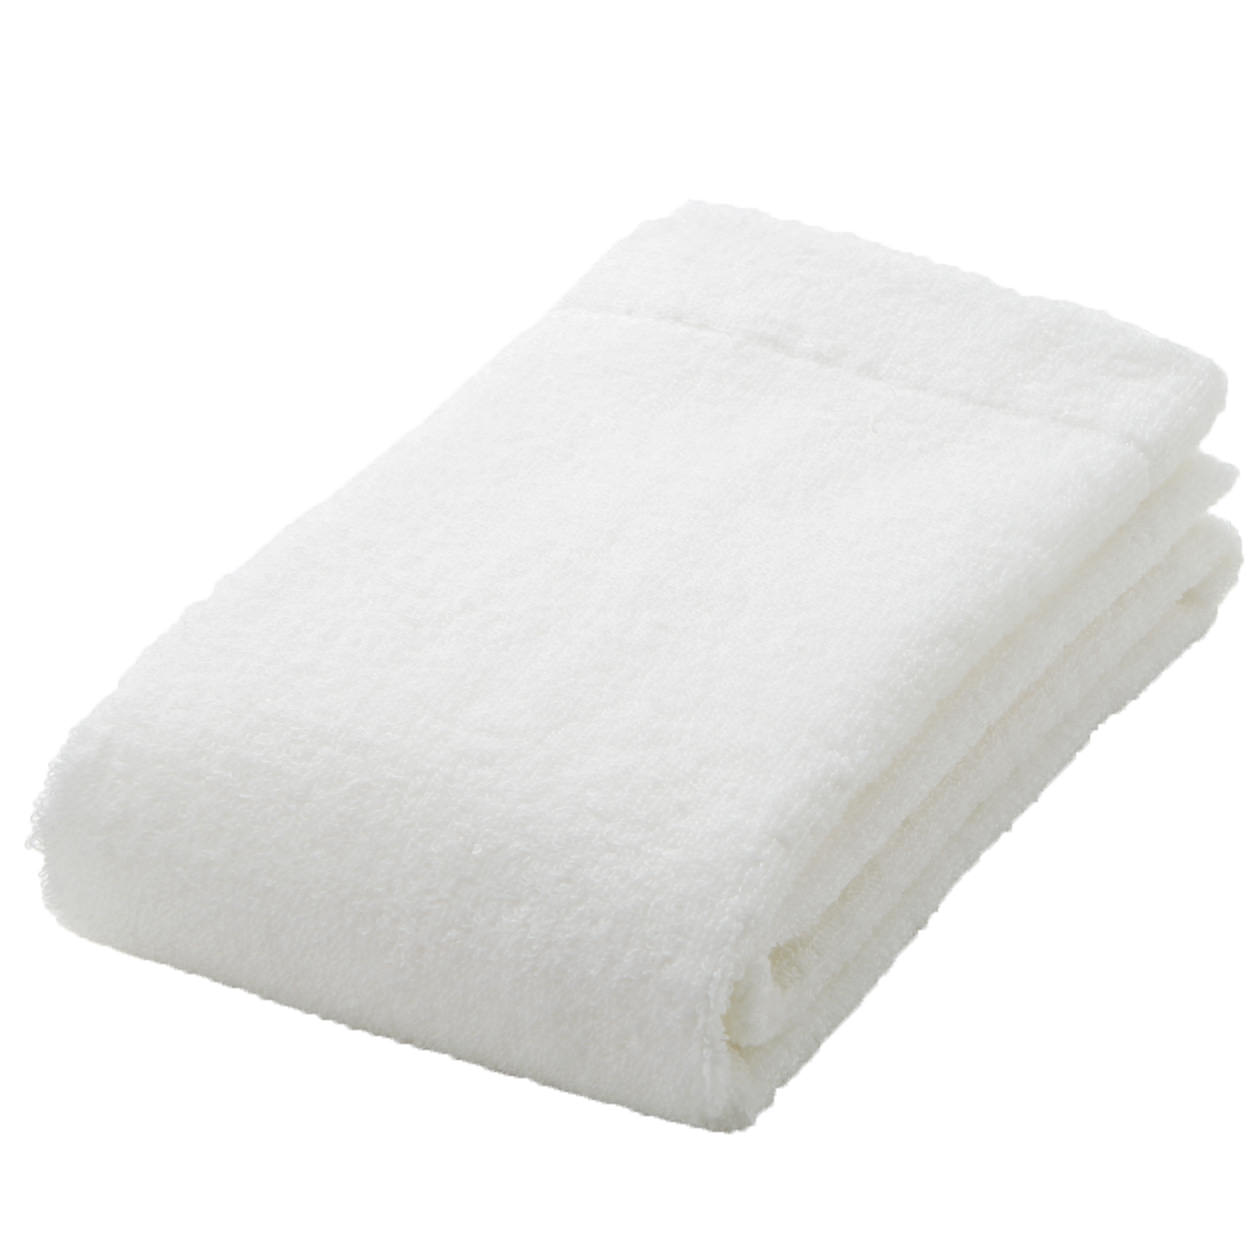 off white thin face towel